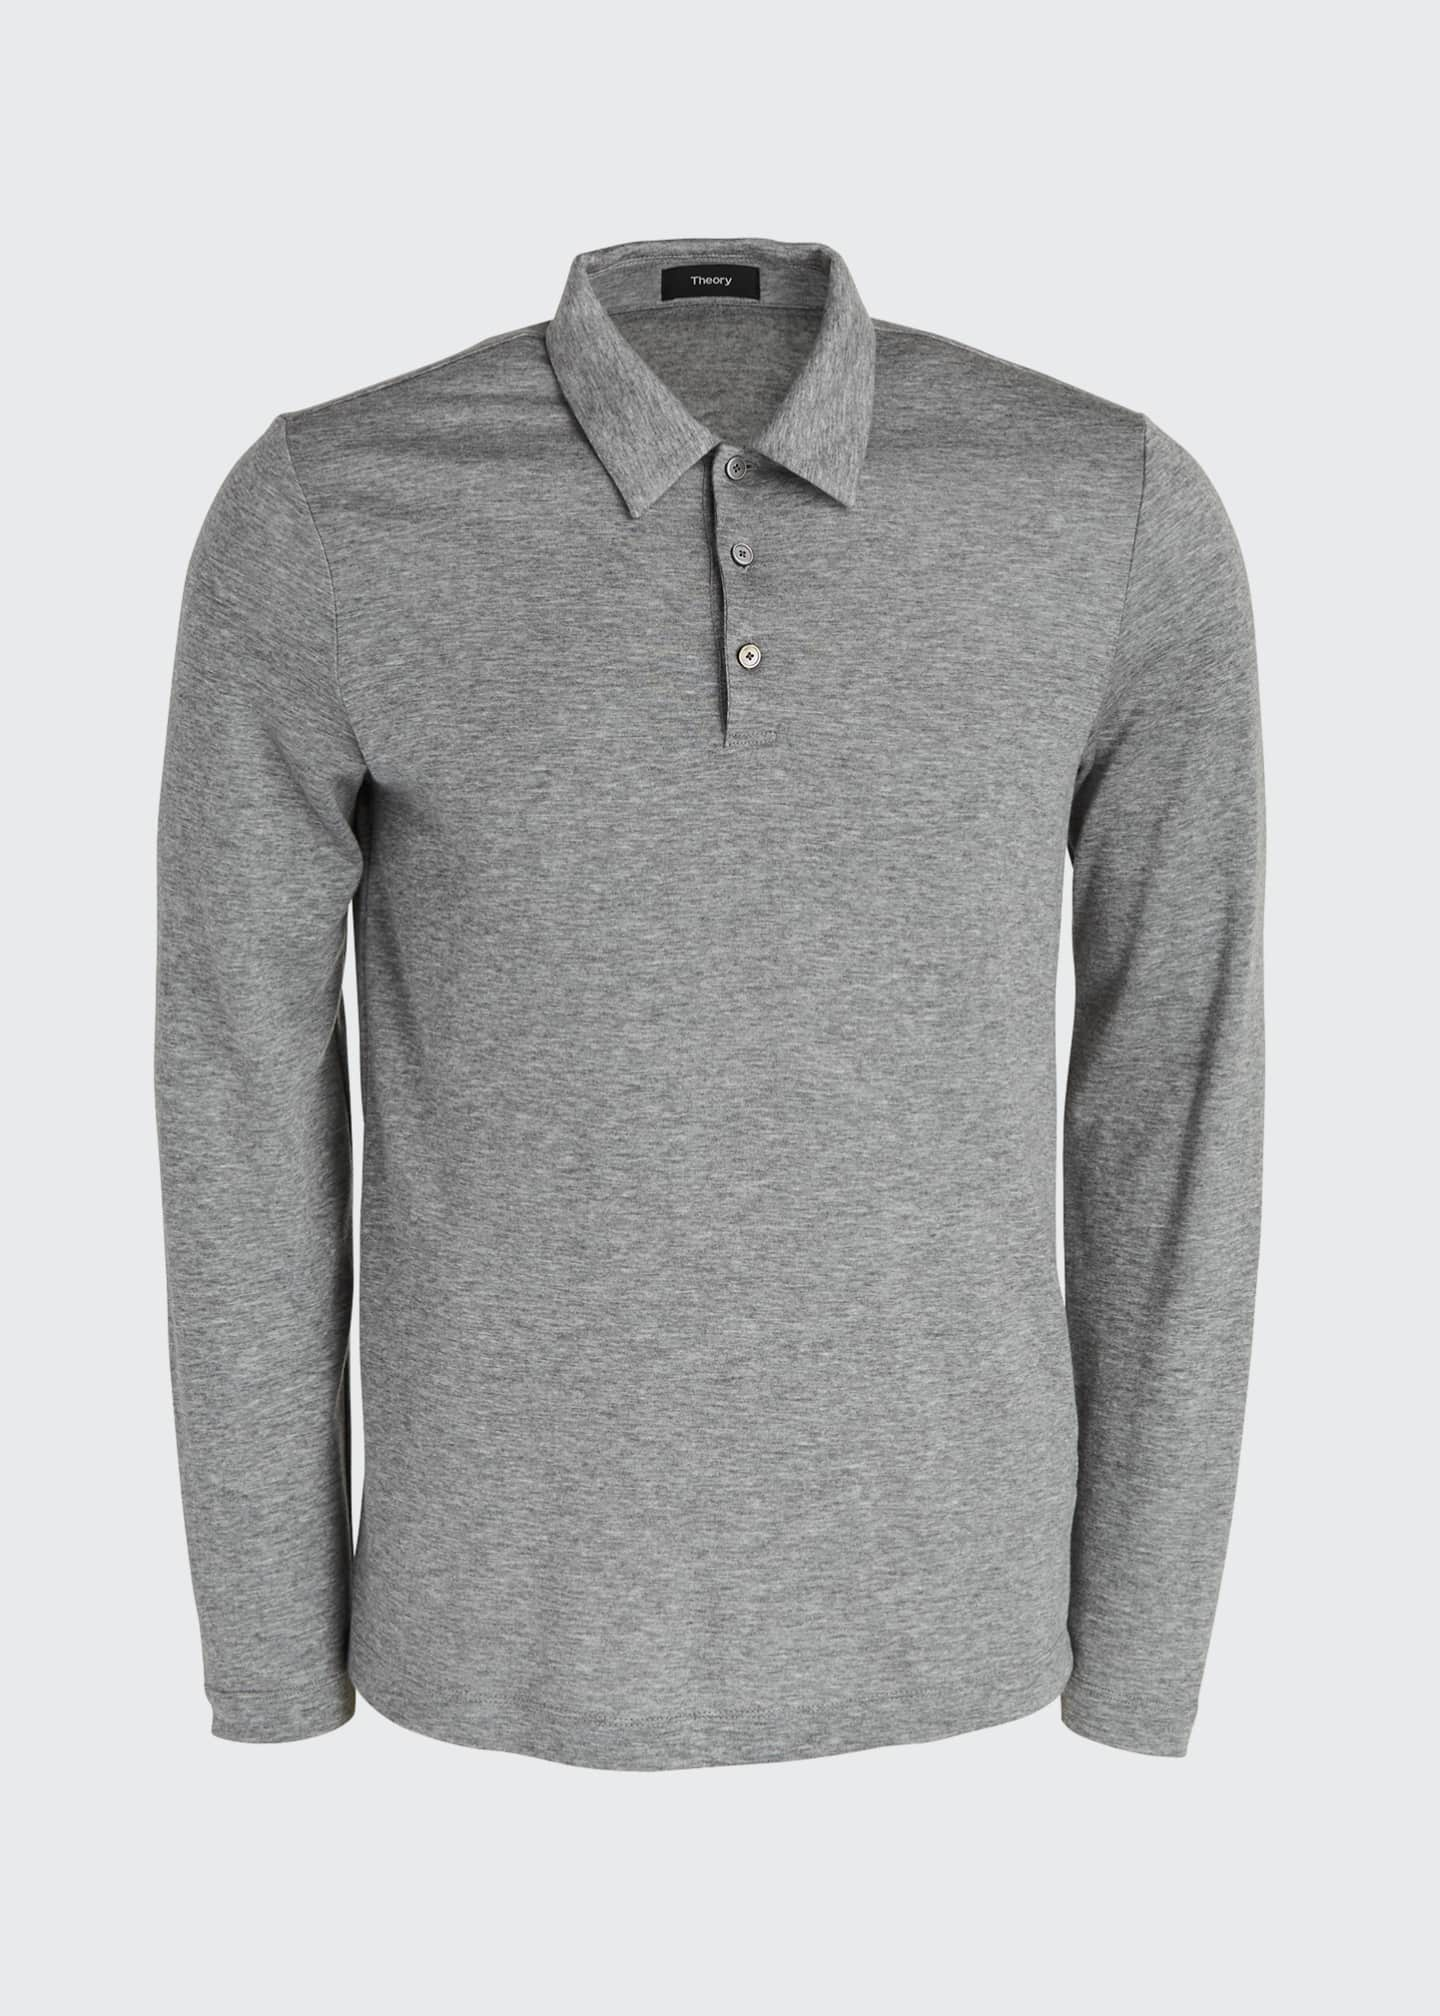 Image 5 of 5: Men's Double-Cashmere Jersey Long-Sleeve Shirt